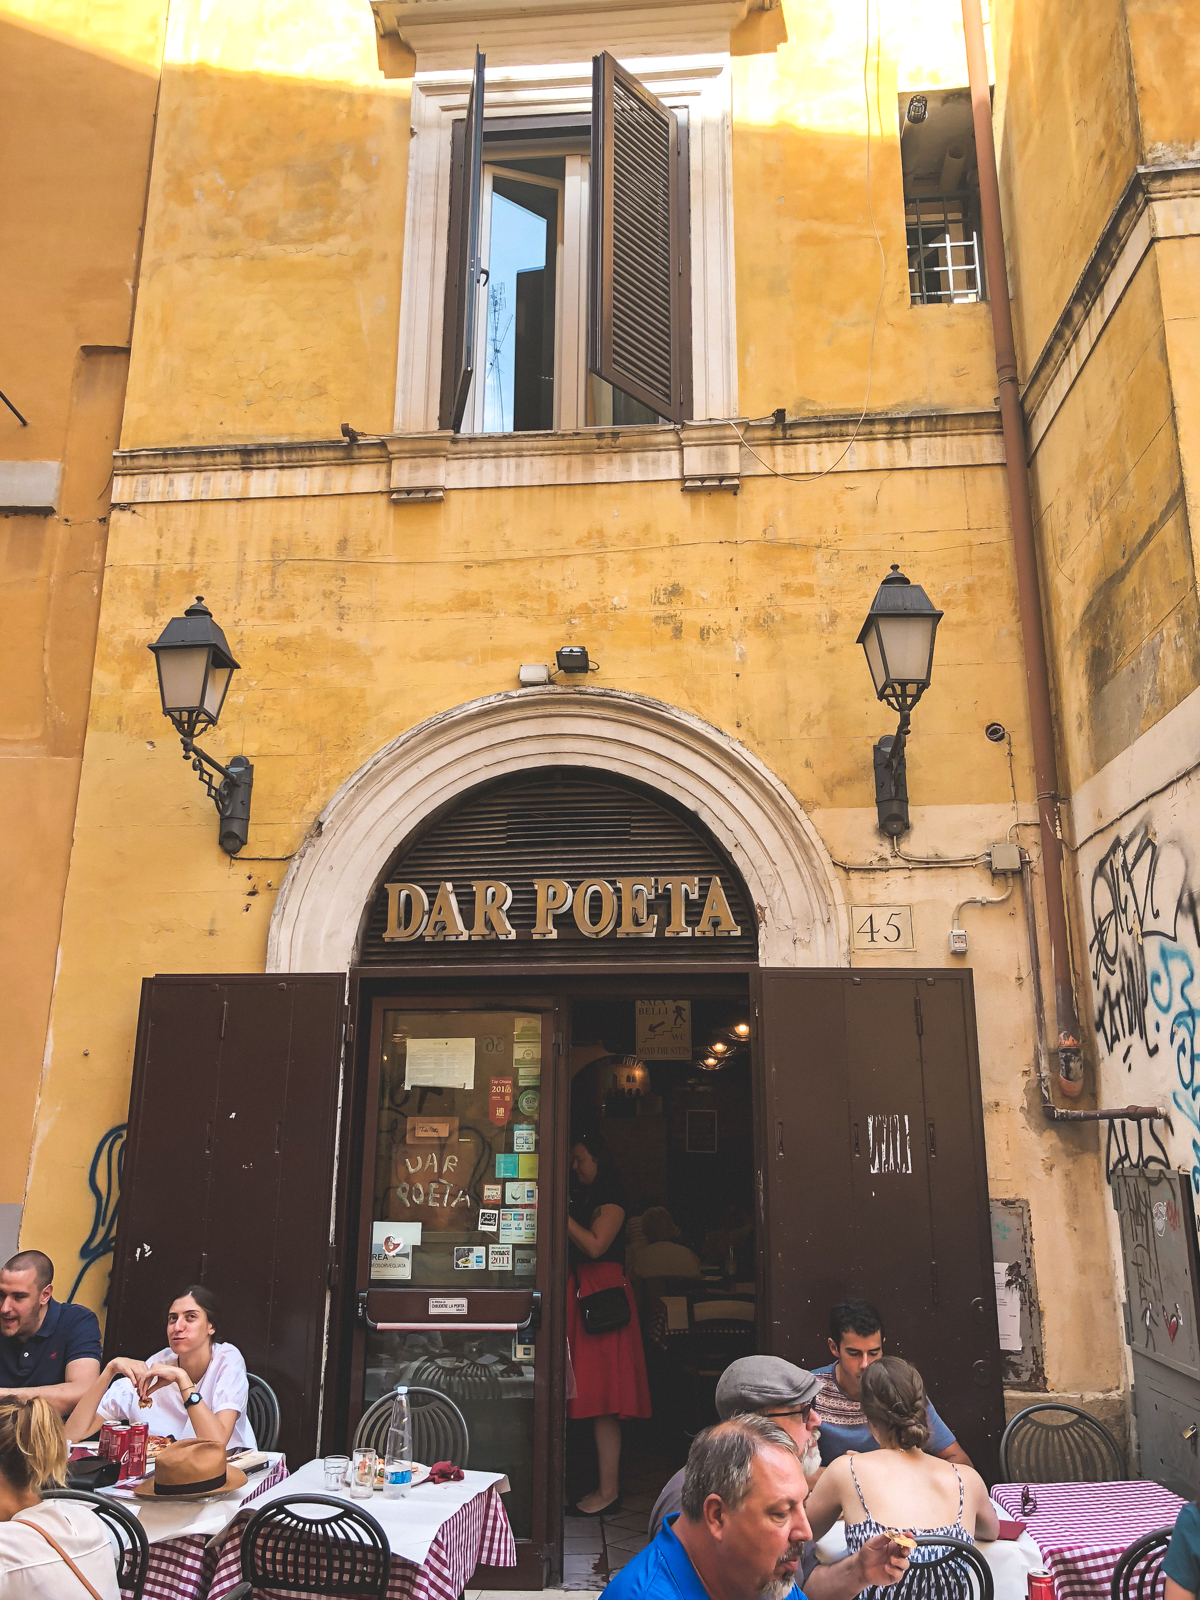 outside the iconic Dar Poeta pizza shop in Trastevere